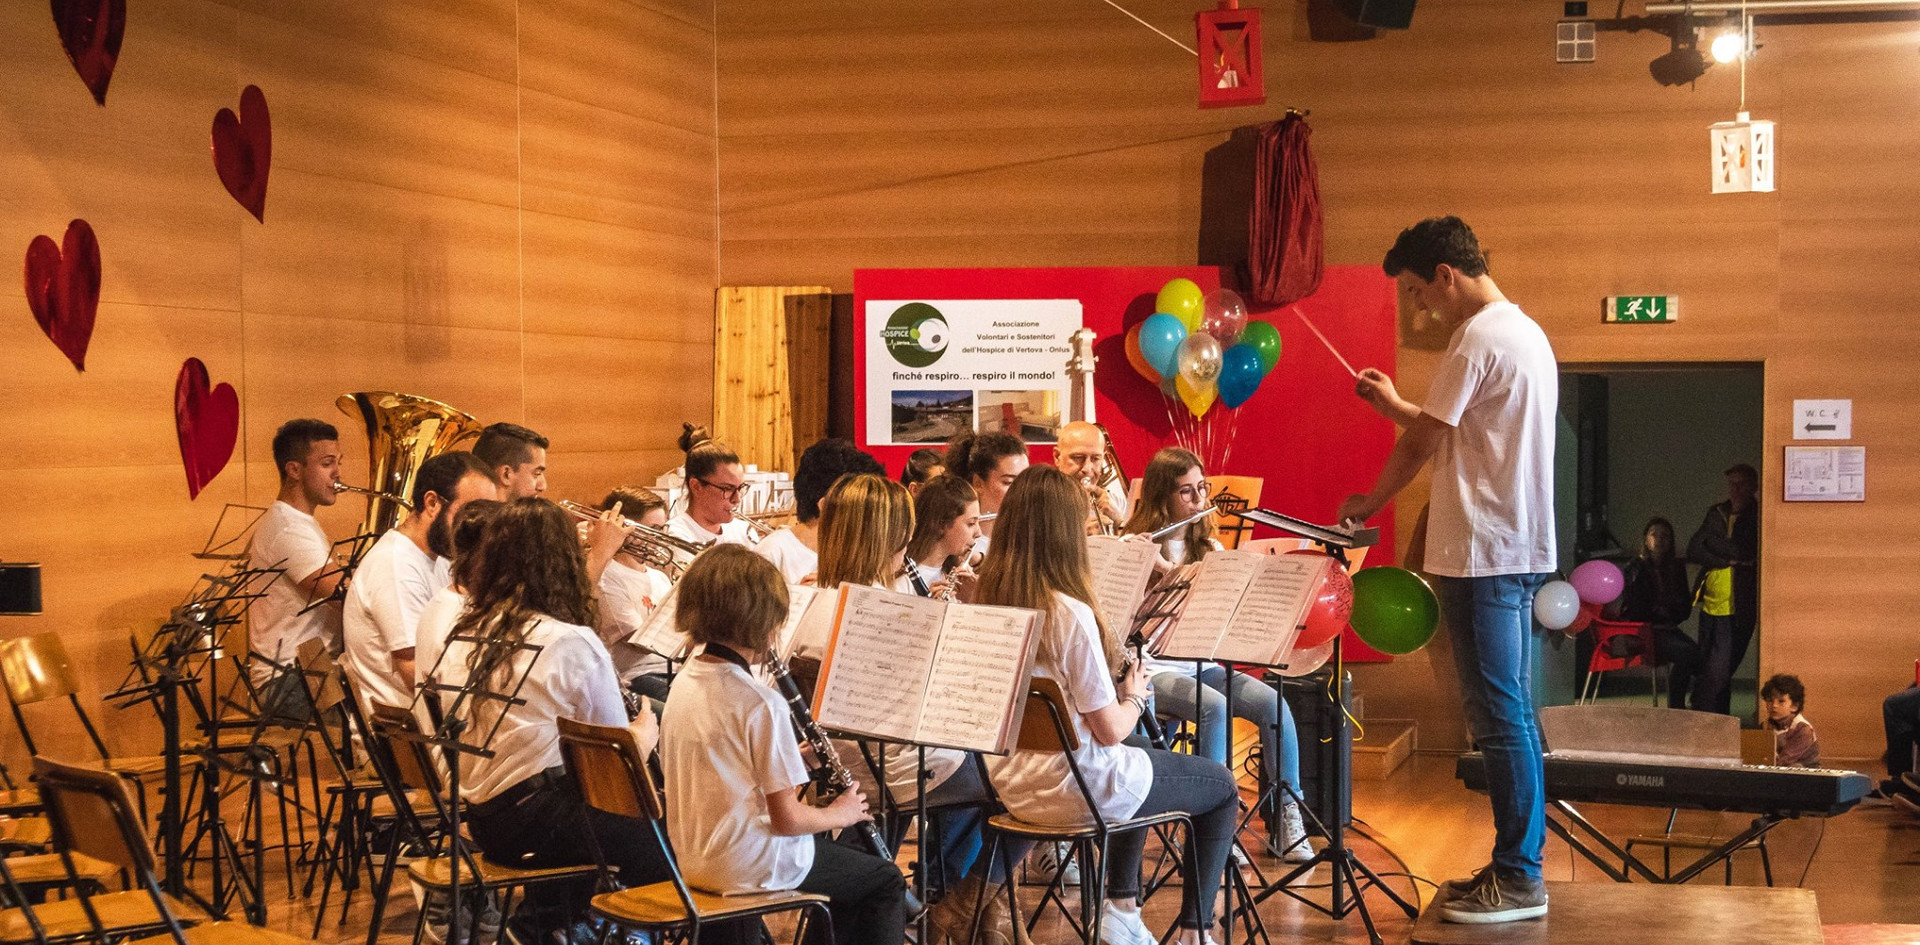 Merenda in musica 2019 - Walk in band